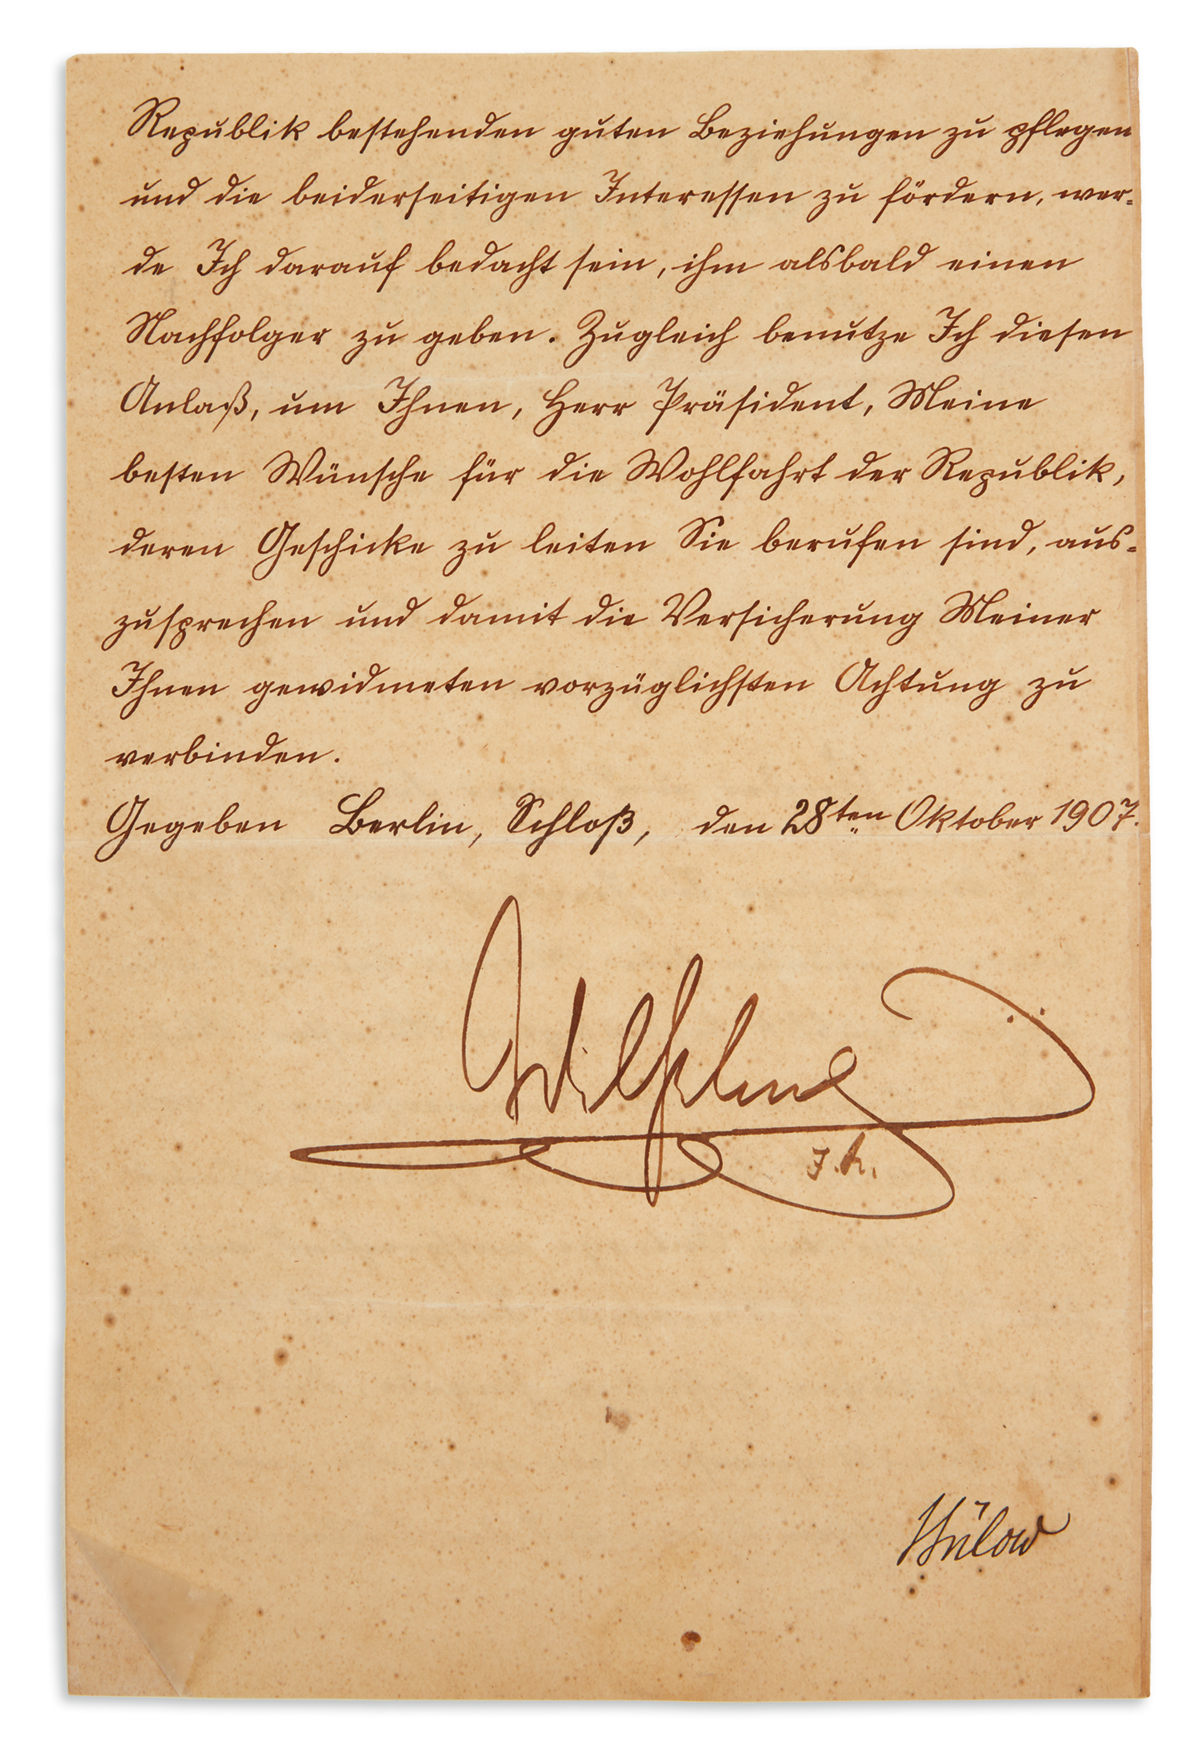 WILHELM II; EMPEROR OF GERMANY. Letter Signed, Wilhelm / I.R., as Emperor, to President of the Cuban Republic [Provisional Governor C